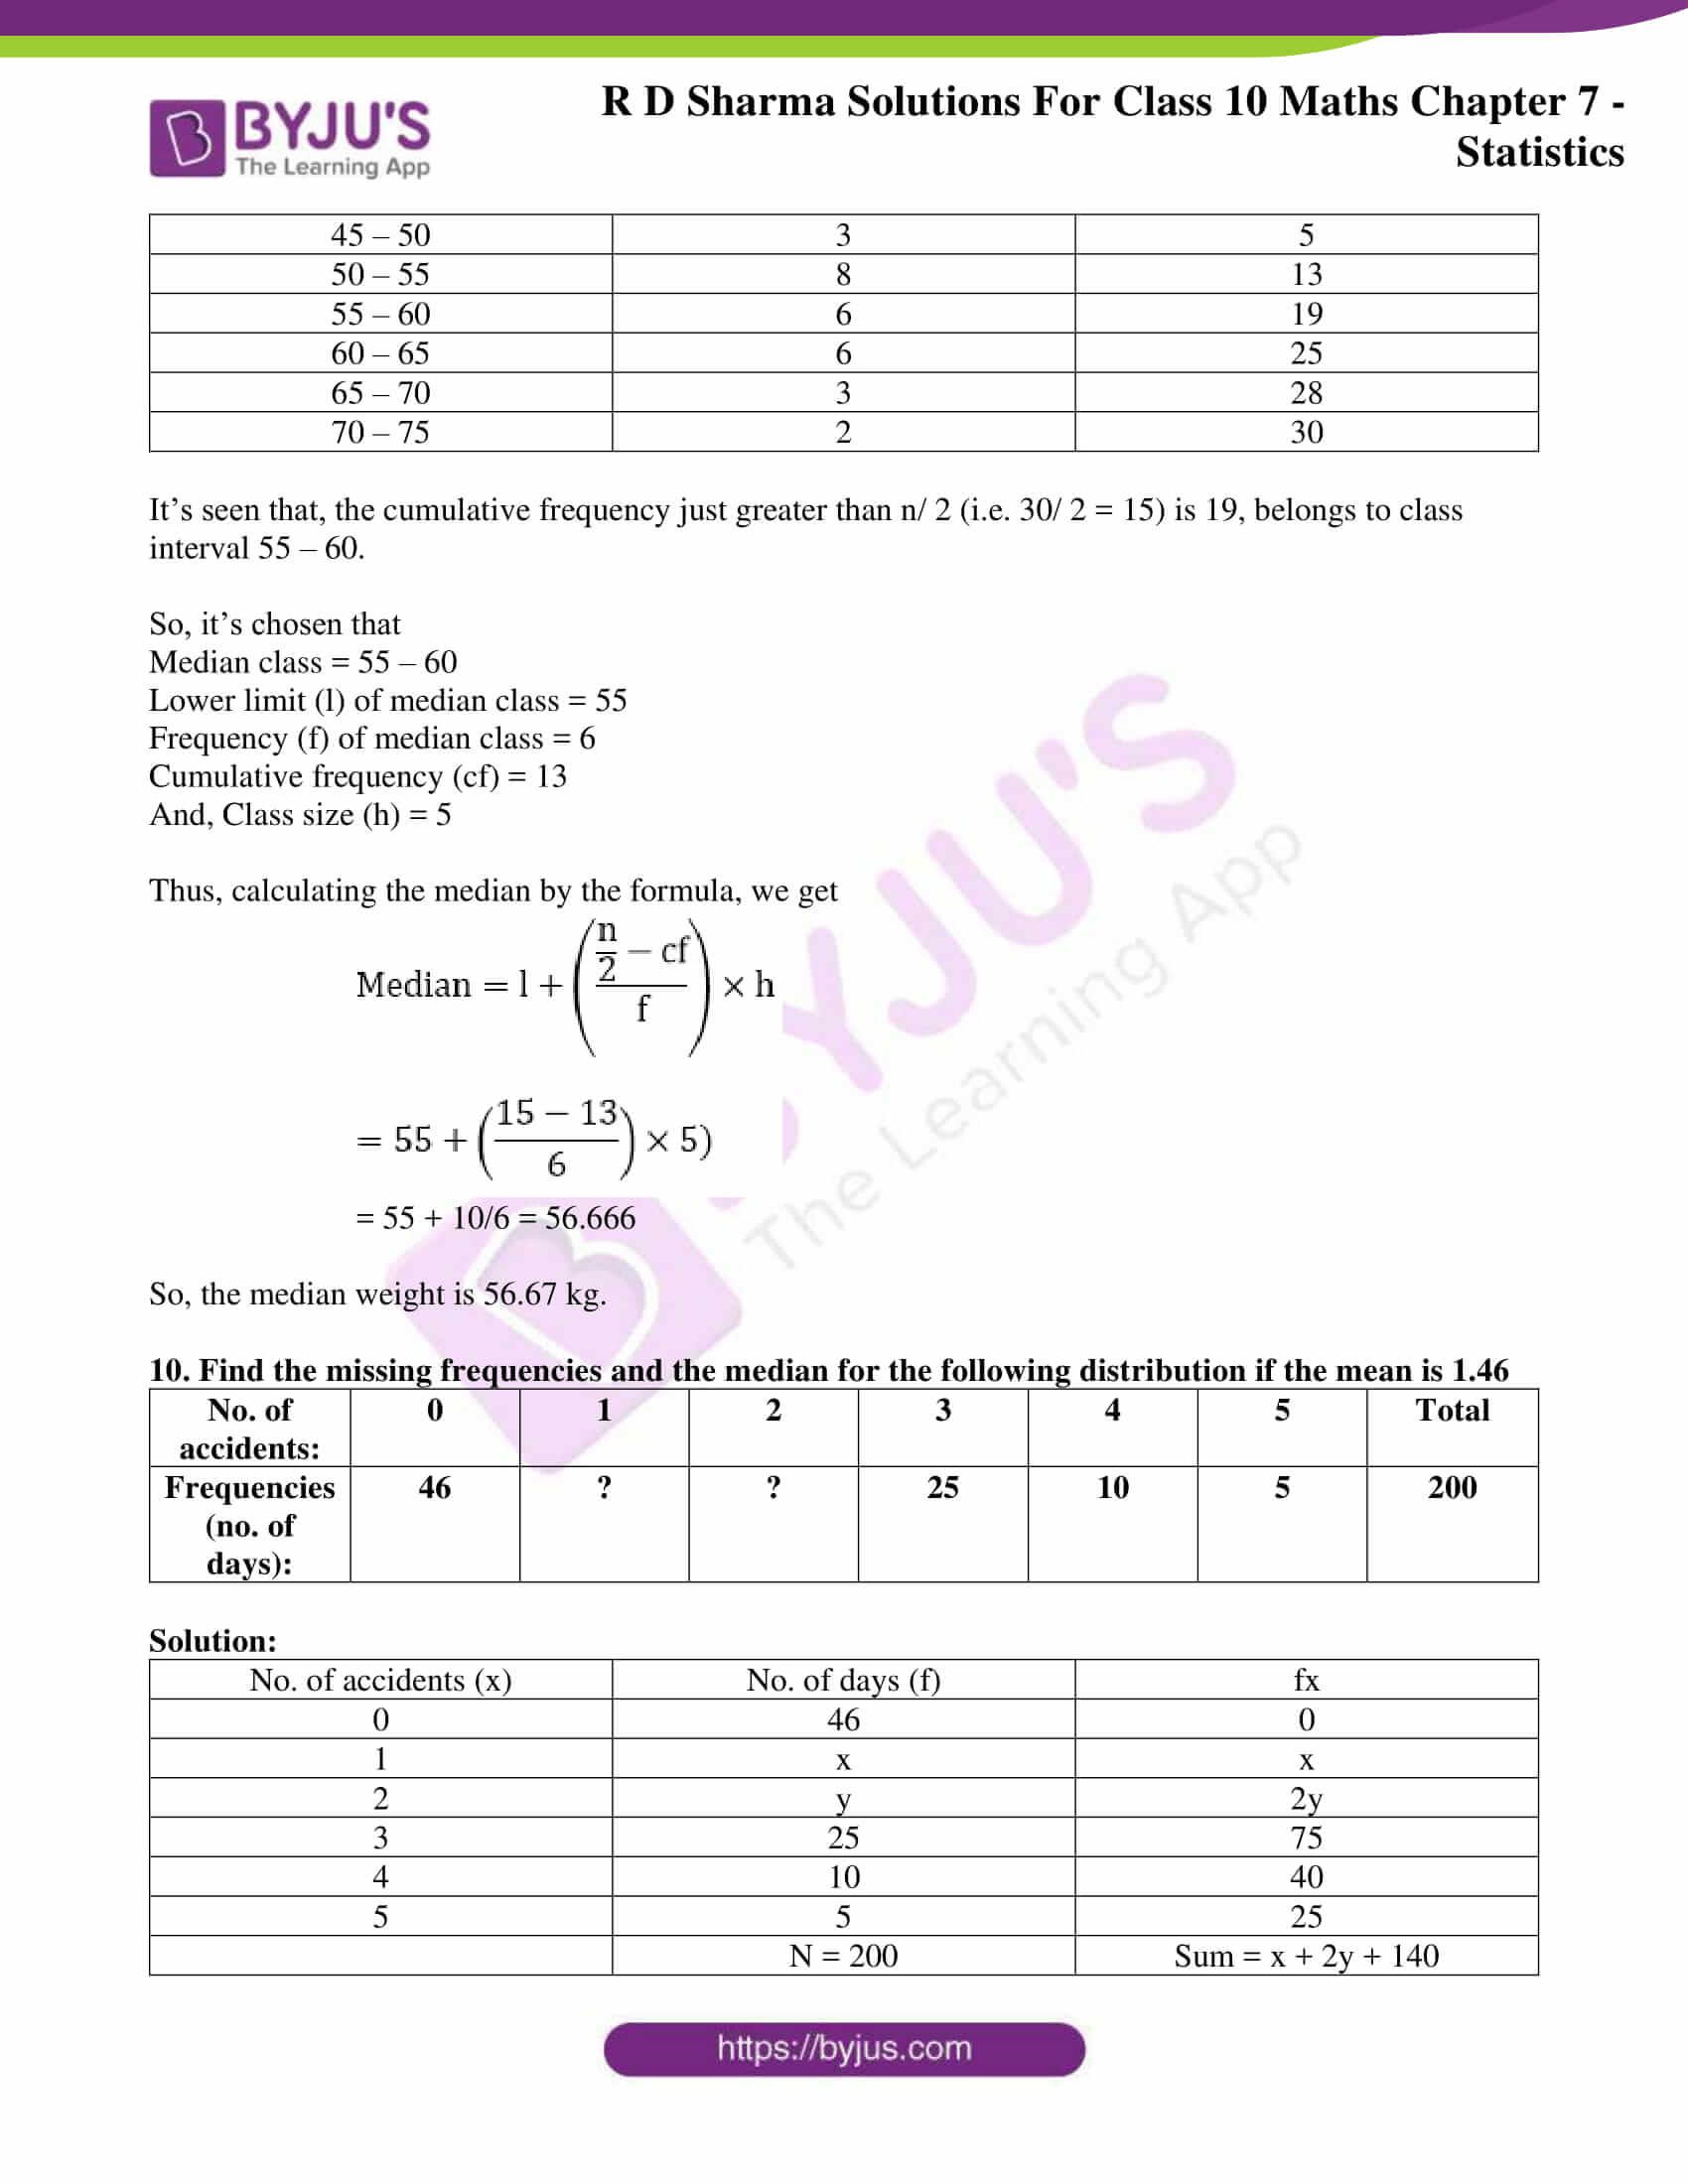 RD Sharma Solutions for Class 10 Chapter 7 Statistics Exercise 7.4 24